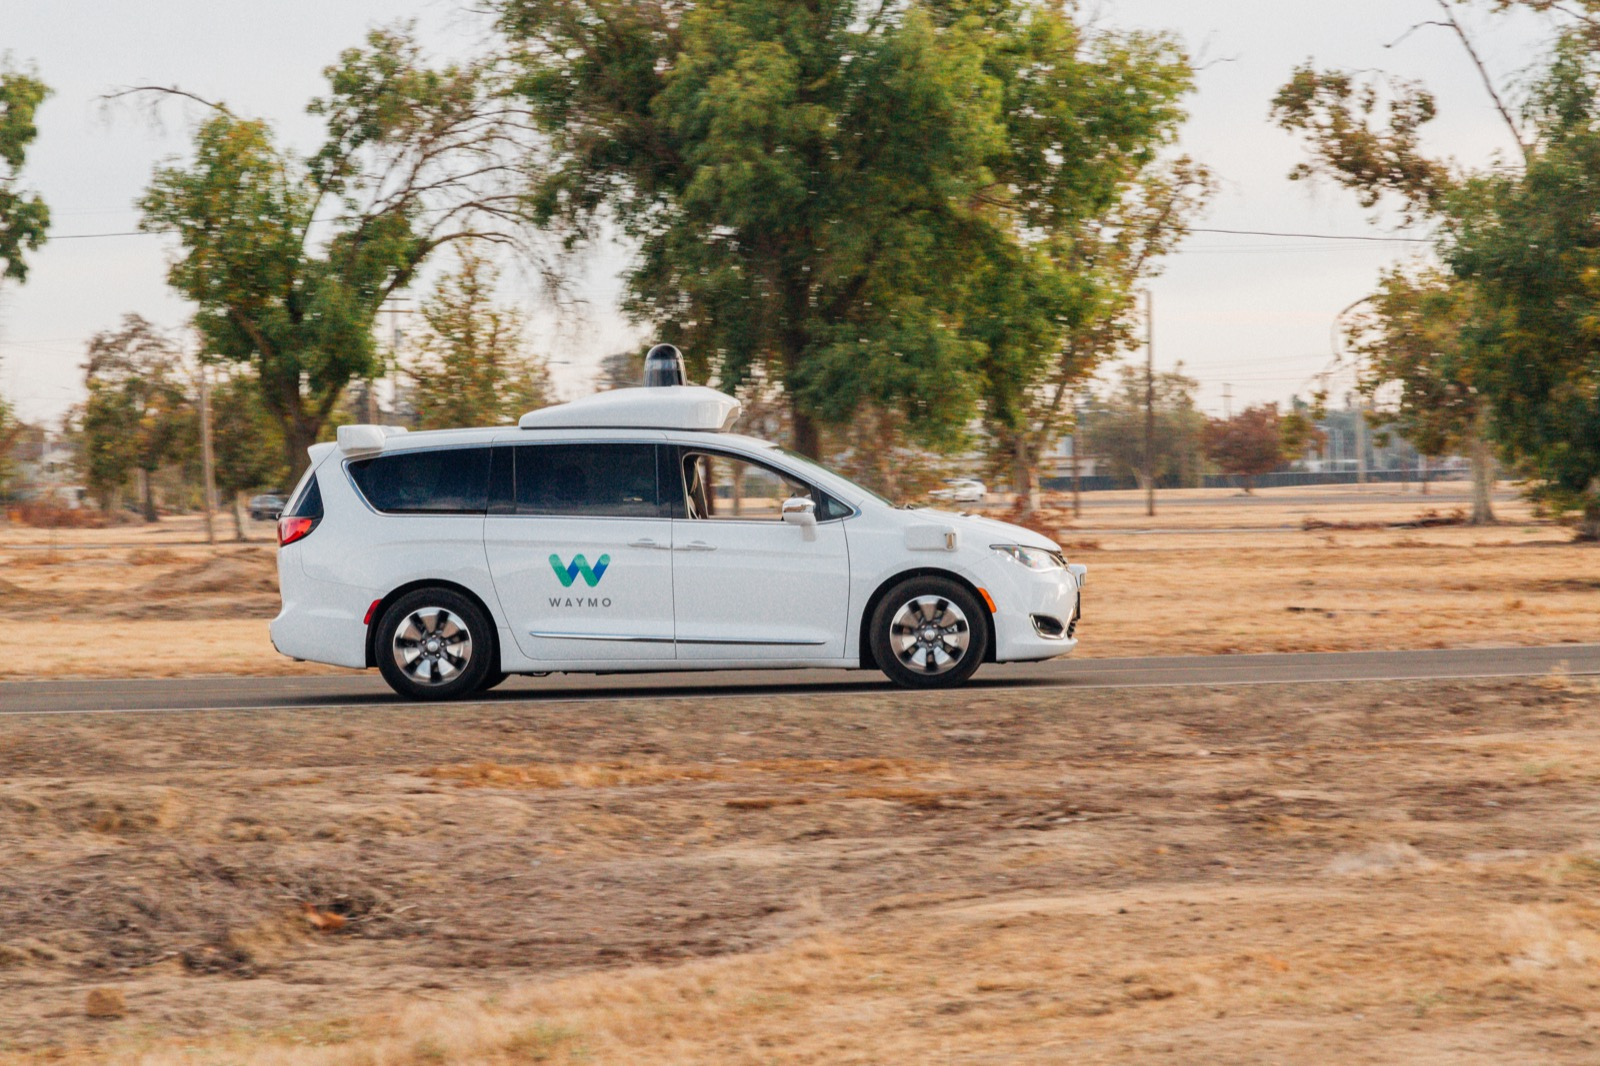 Waymo will purchase up to 62,000 self-driving minivans from Chrysler